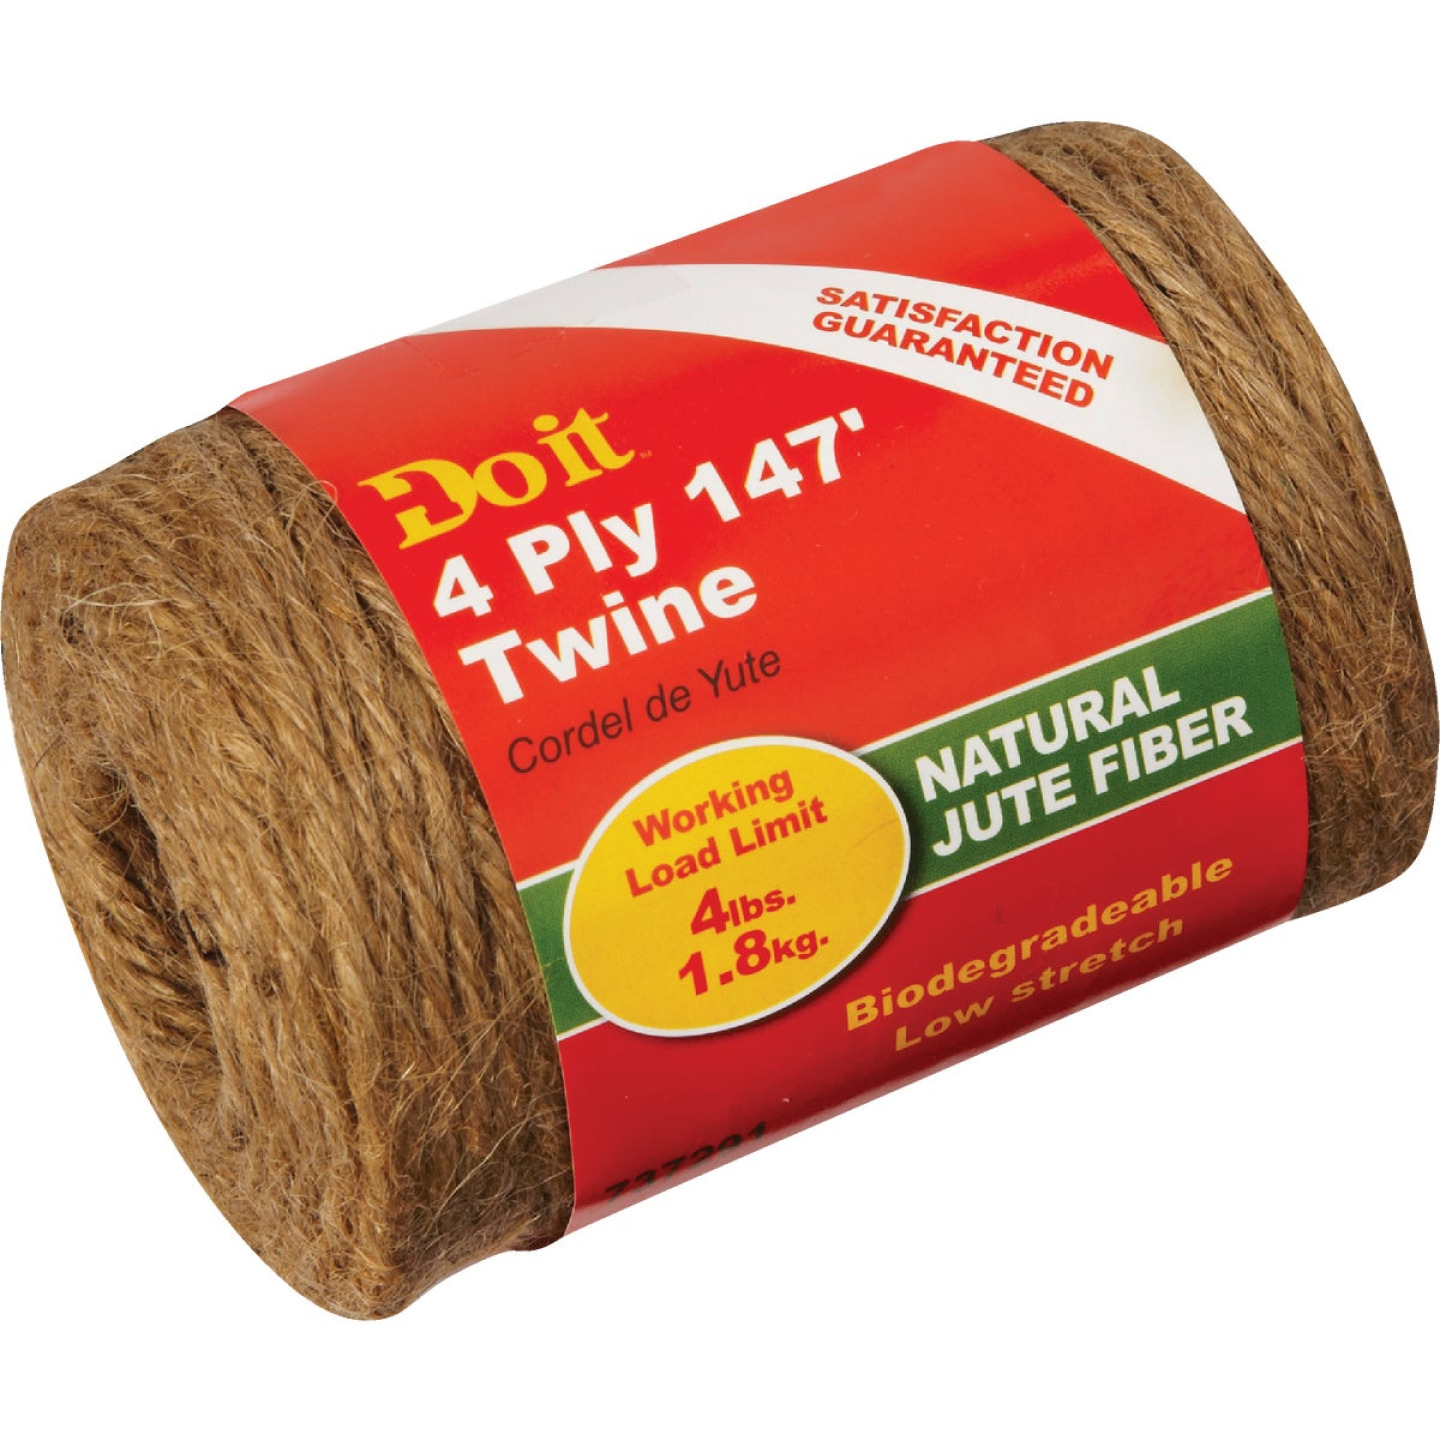 Do it 4-Ply x 147 Ft. Brown Jute Biodegradable Twine Image 1